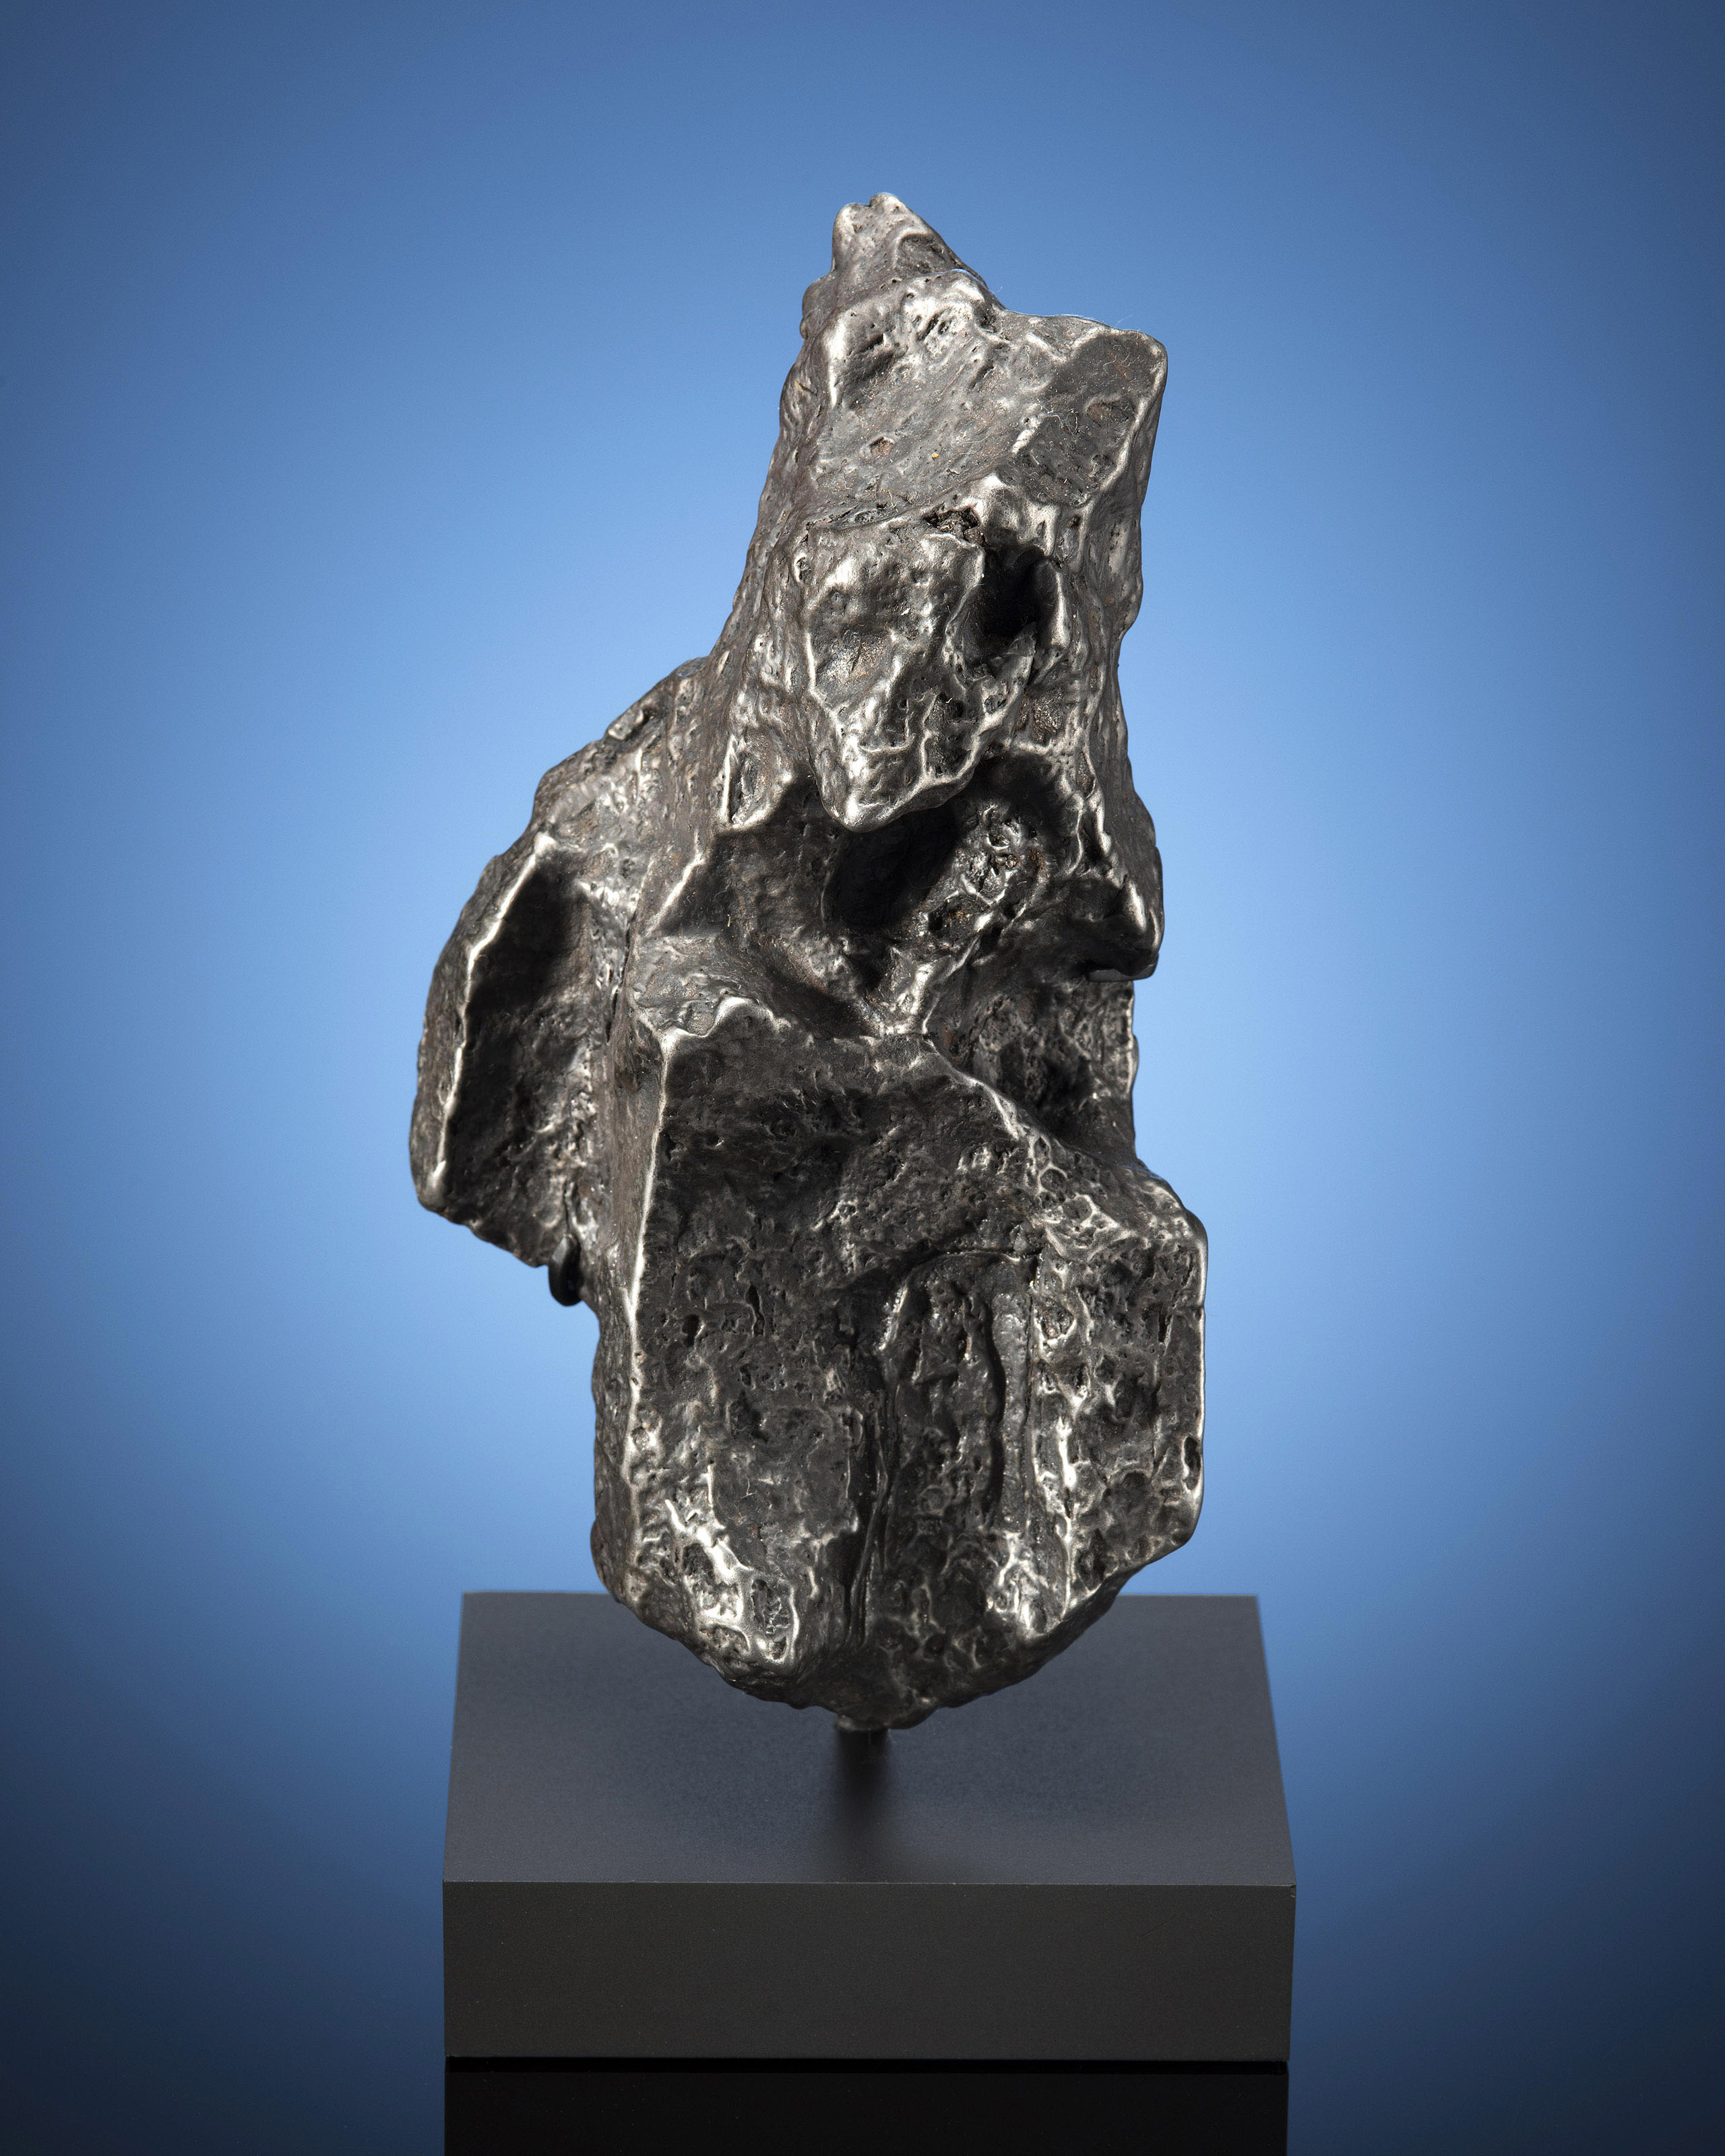 CAMPO DEL CIELO METEORITE — AESTHETIC OTHERWORLDLY TOTEM-SCULPTURE